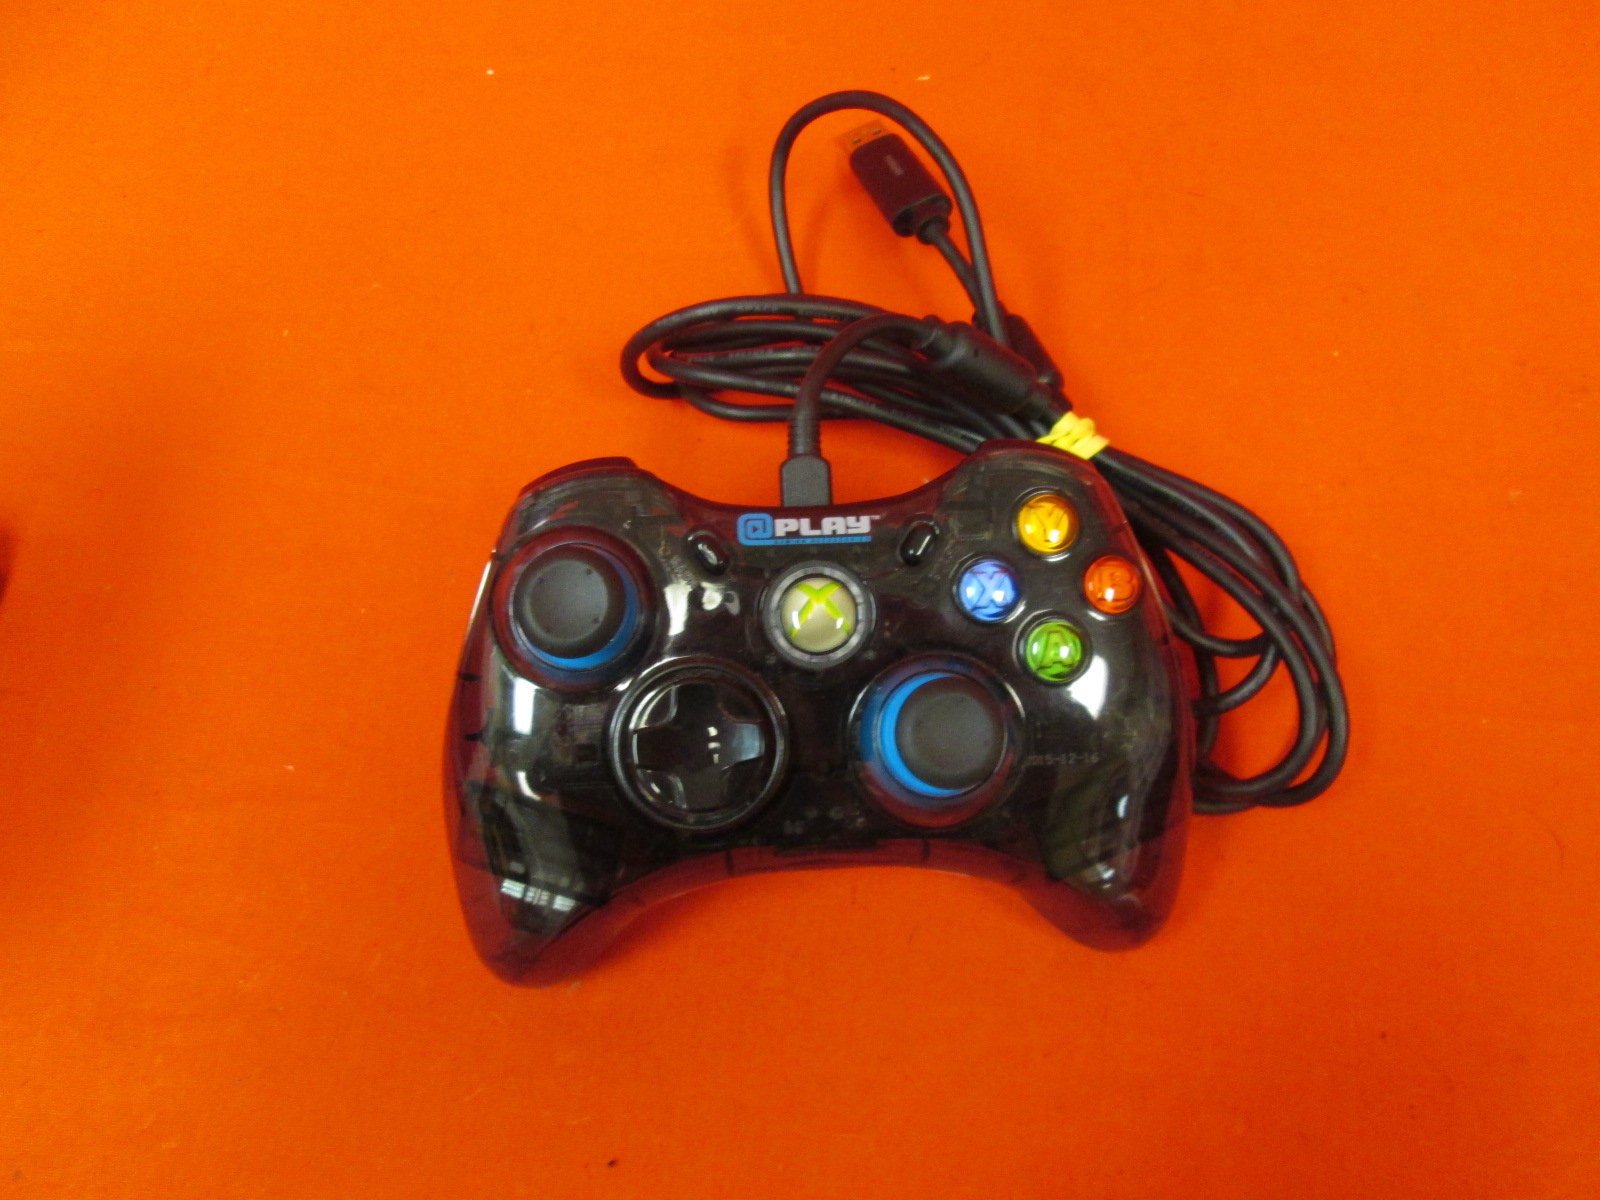 At Play Xbox 360 Wired Controller 037-027